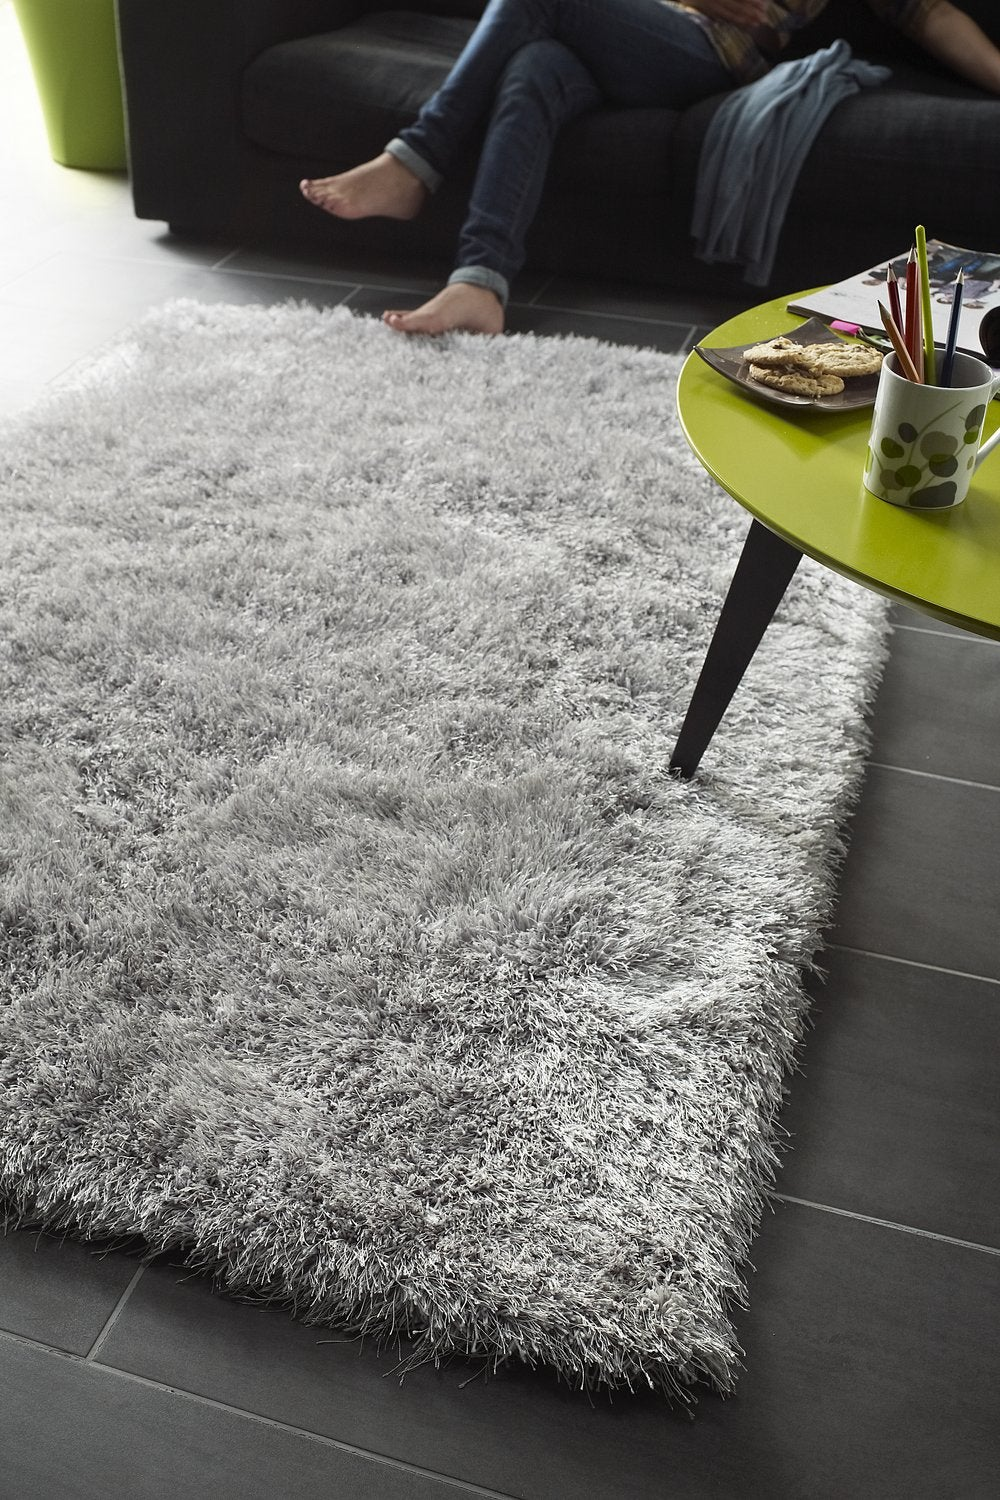 Tapis vache leroy merlin tapis vache leroy merlin with tapis vache leroy merlin tapis vache - Tapis barbecue leroy merlin ...